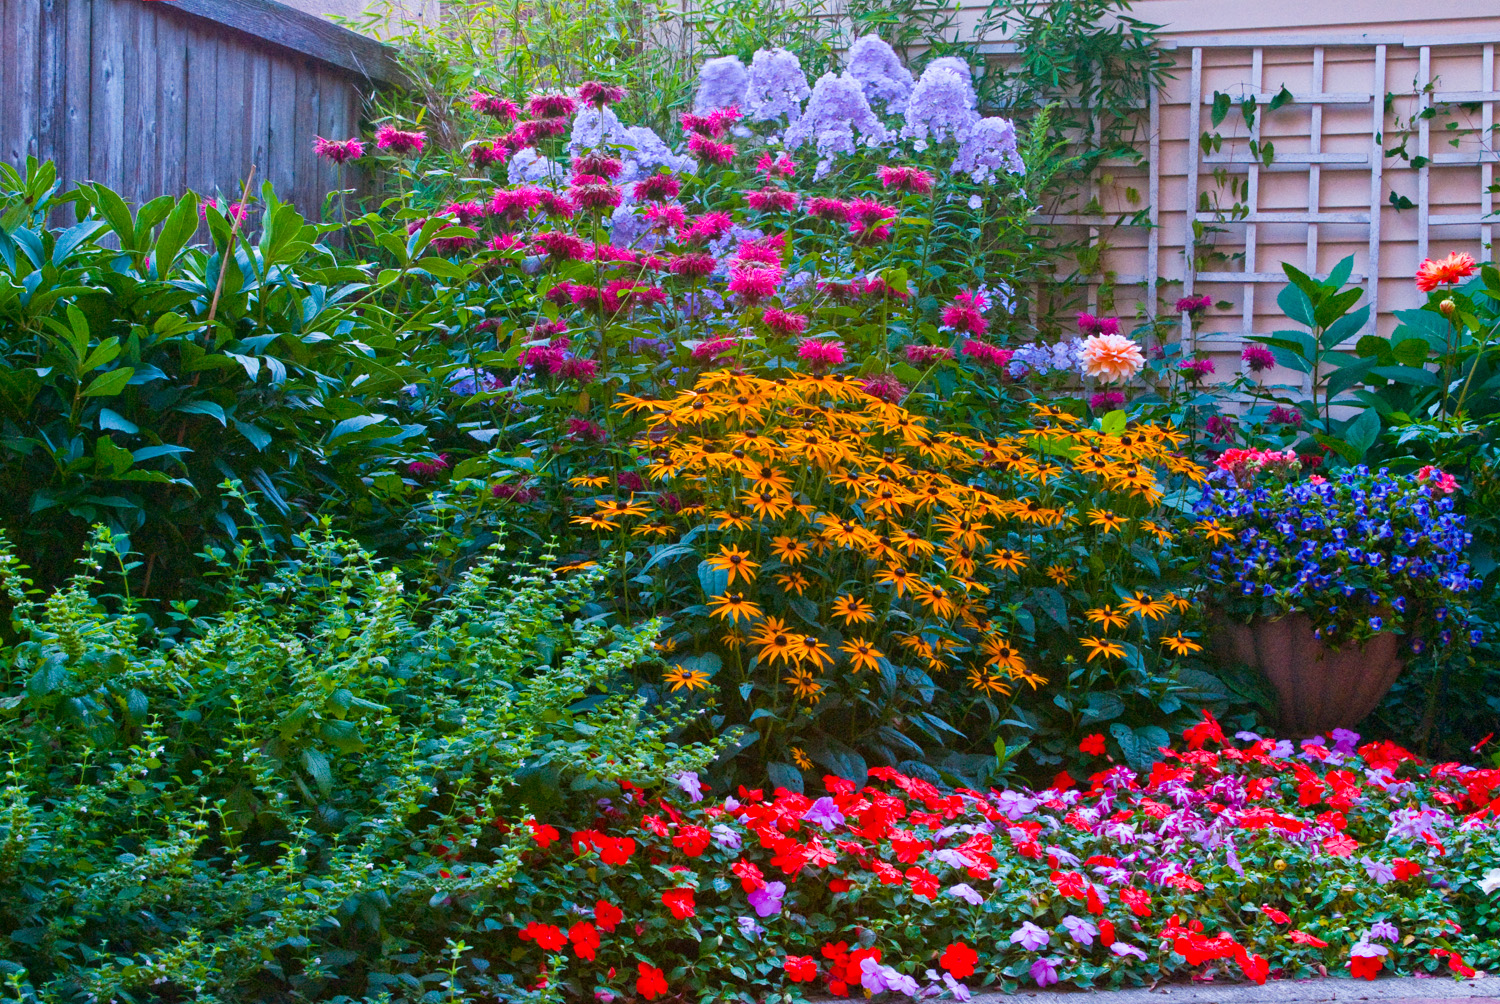 A Summer in Bloom